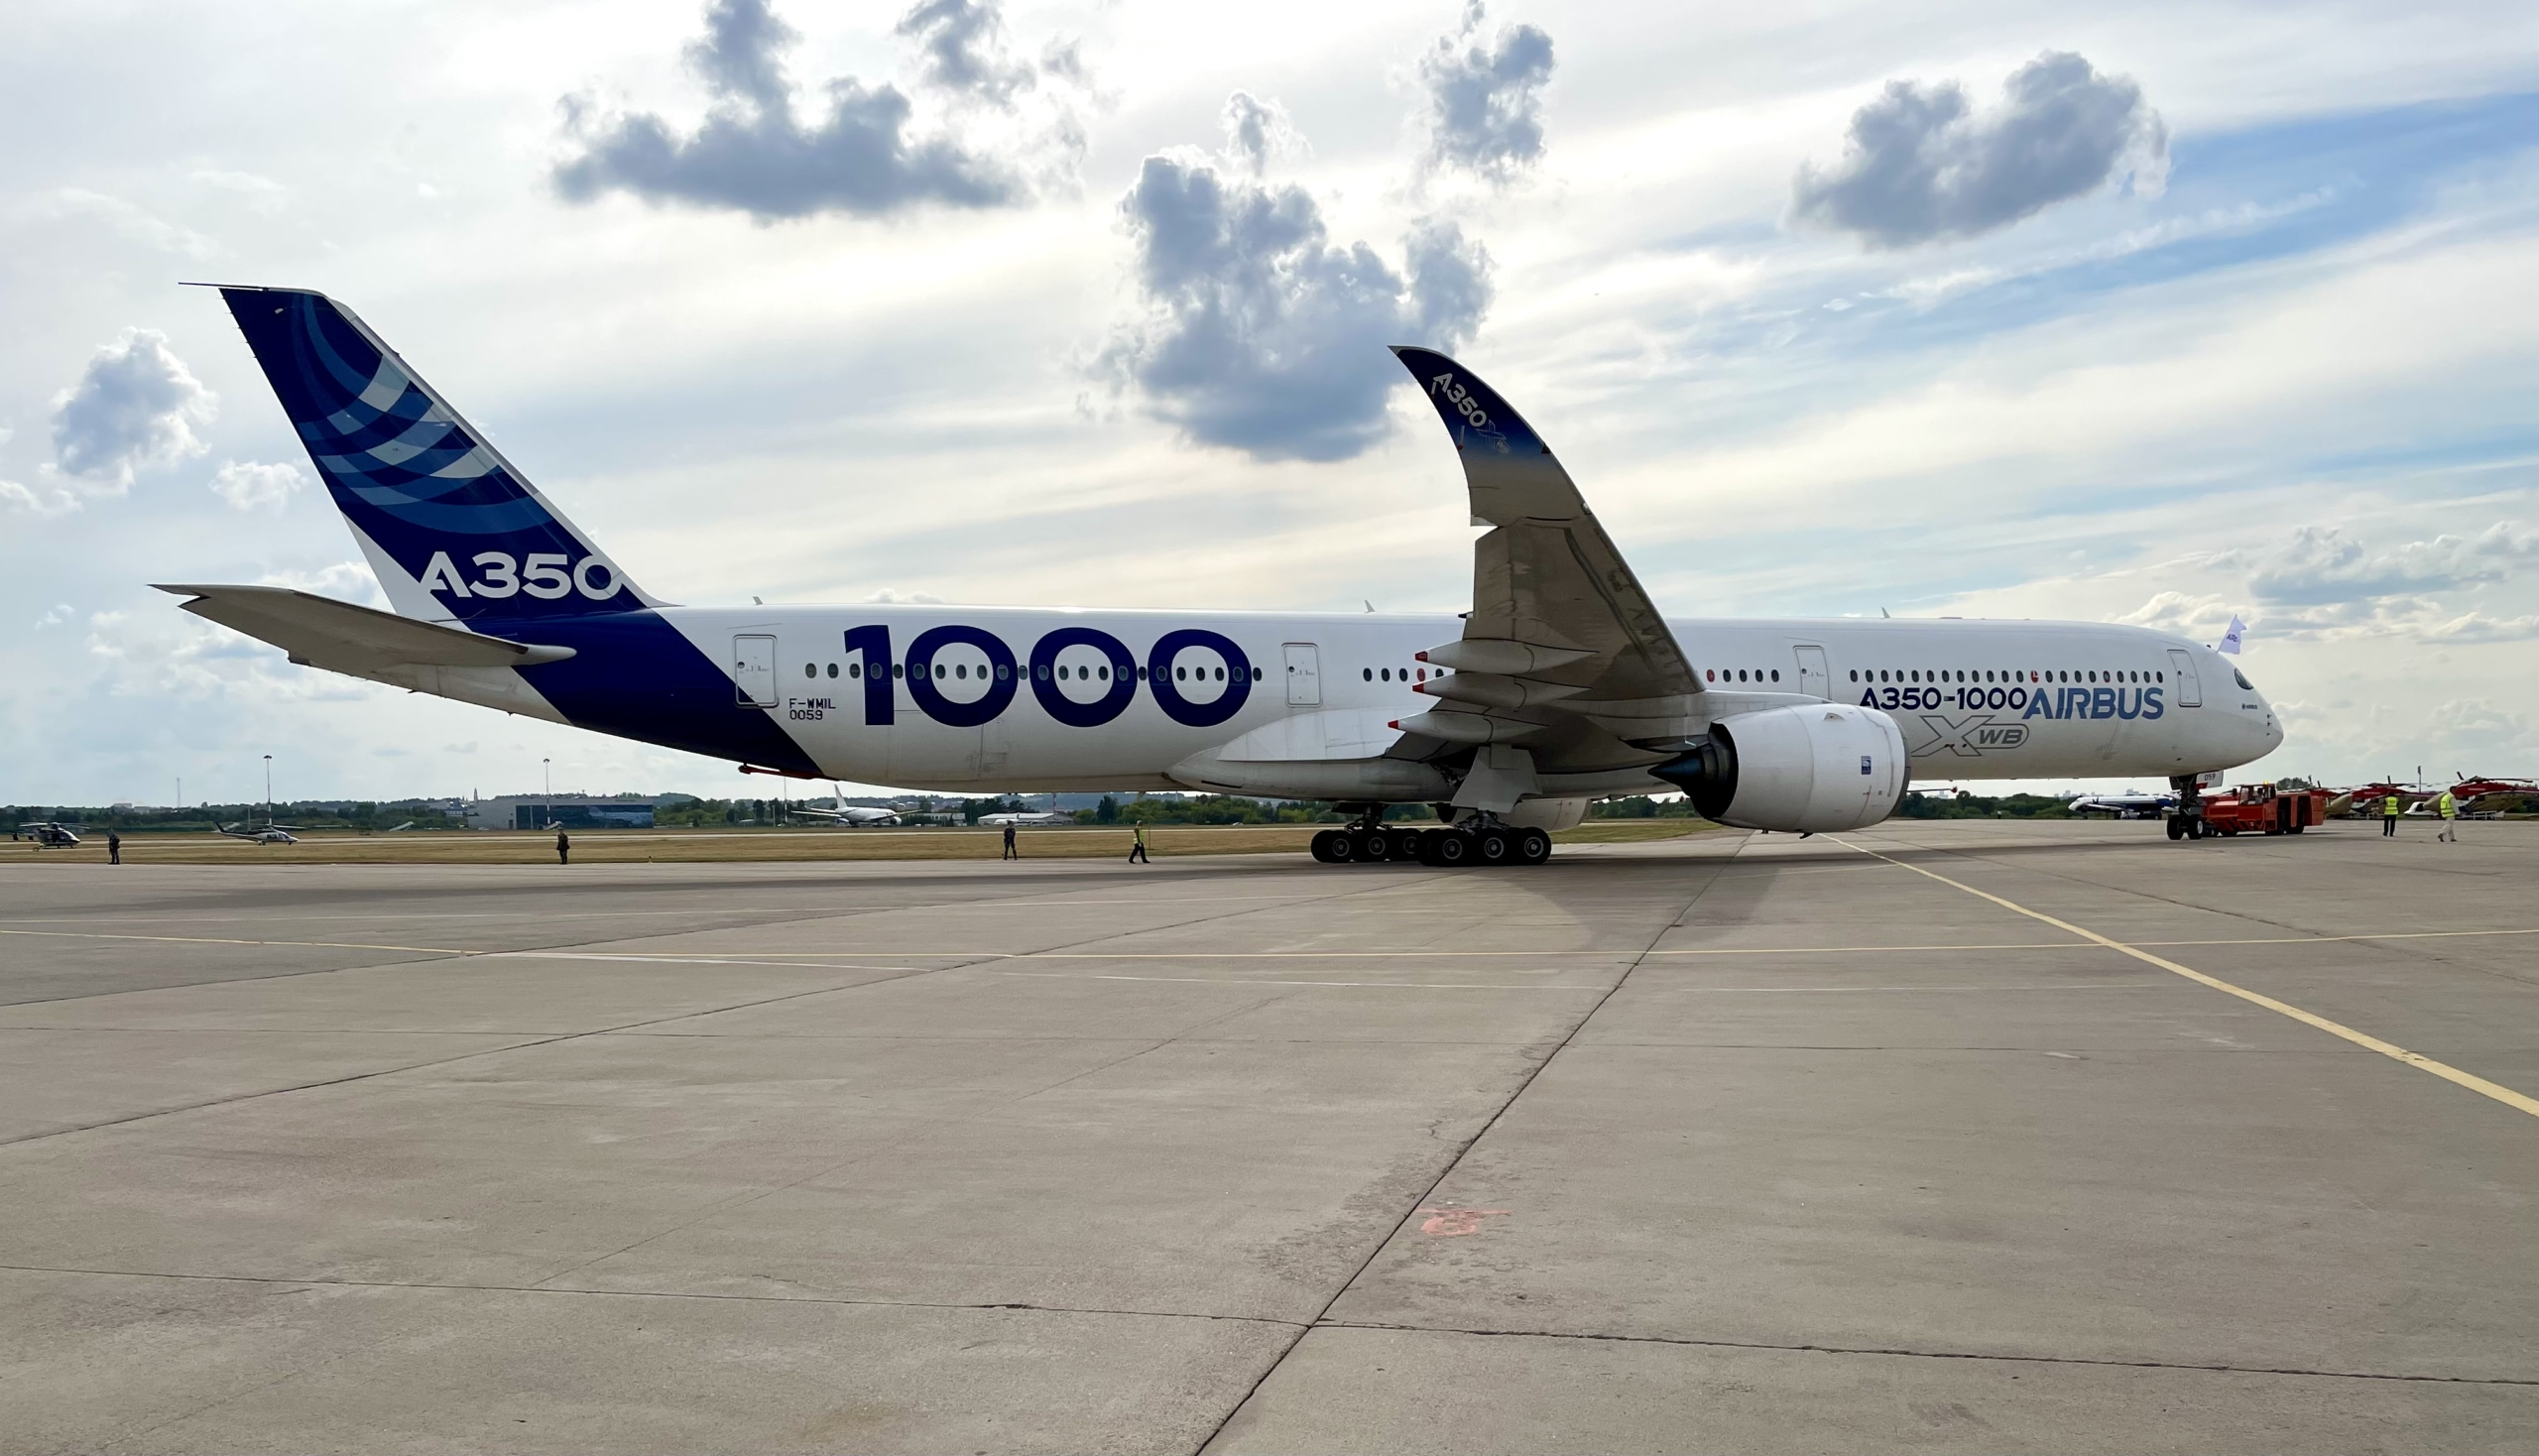 Wow: Airbus Has Had To Renegotiate 1000 Aircraft Deals